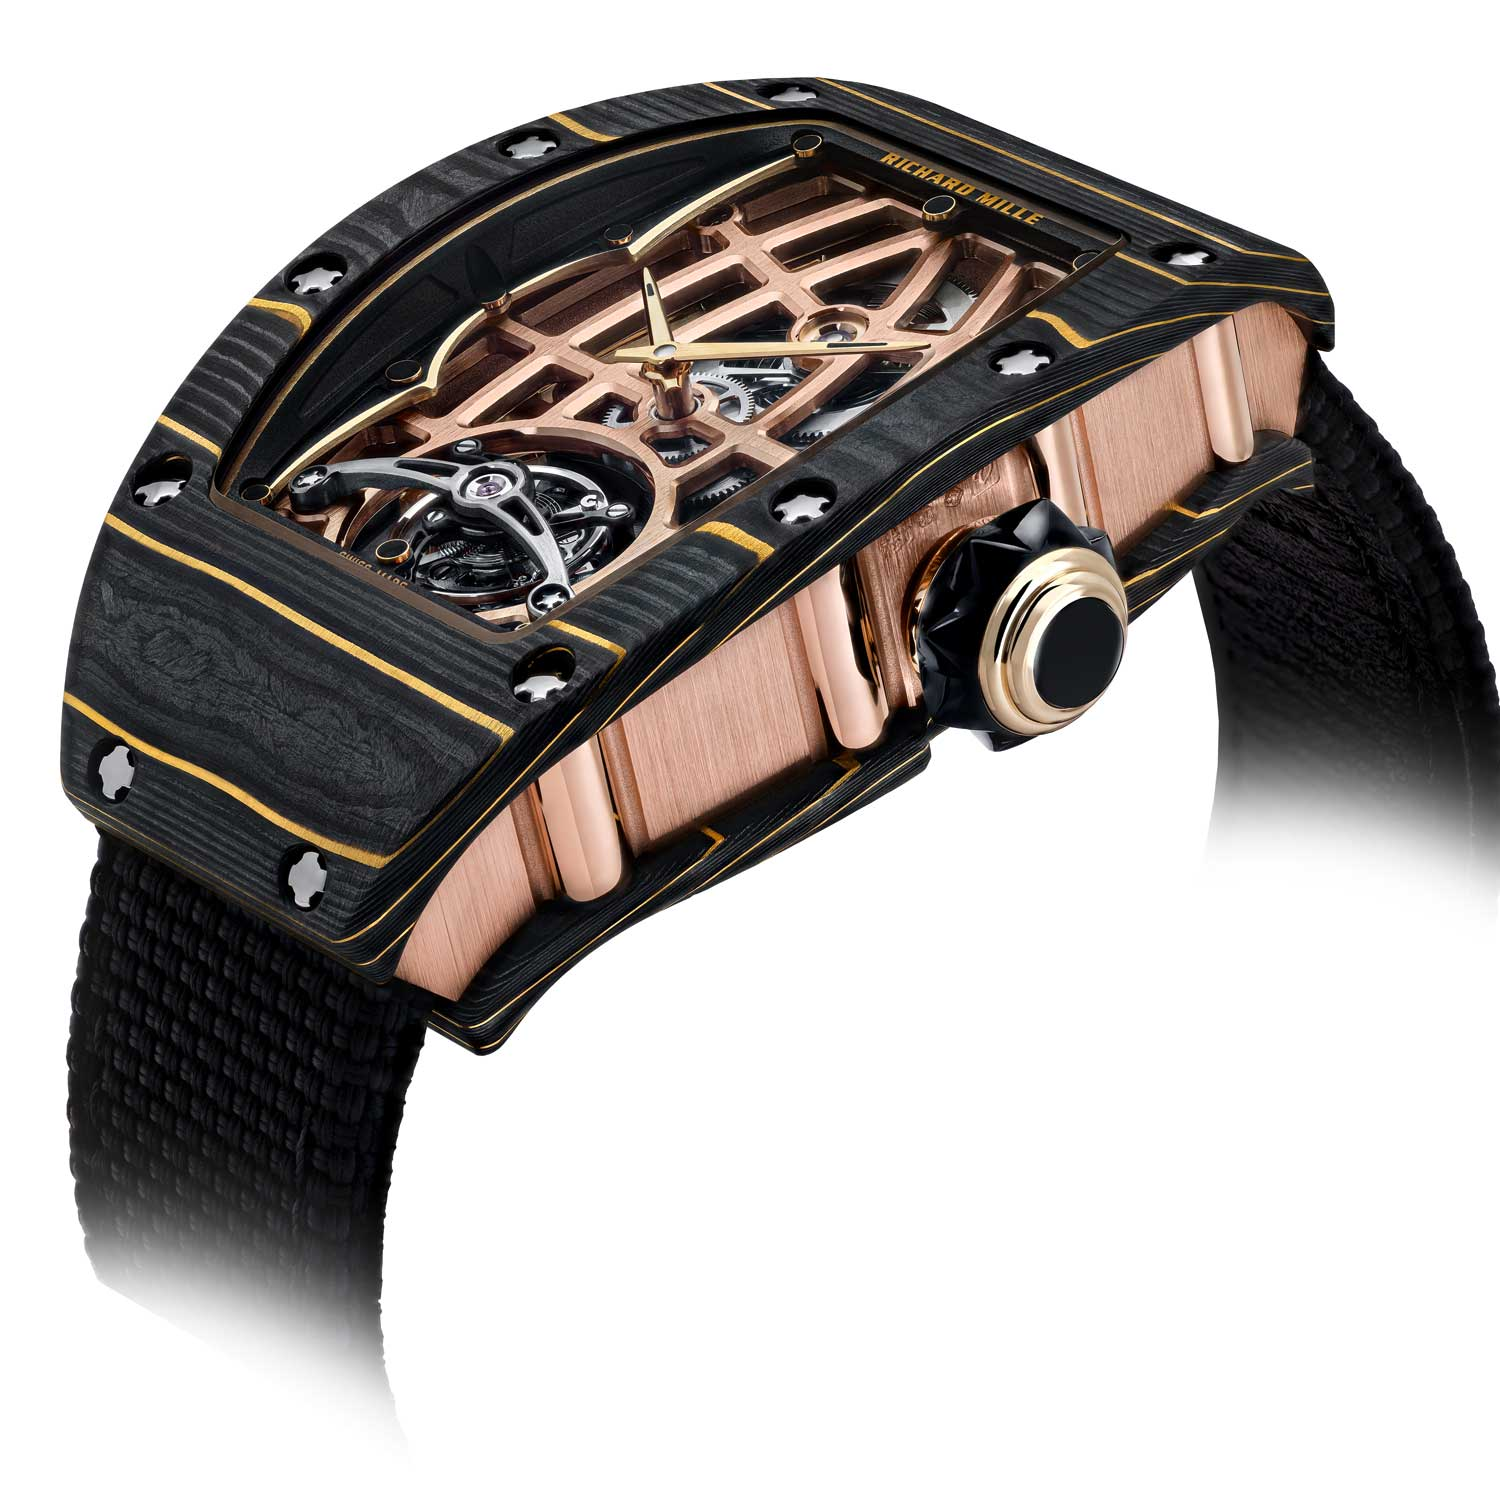 The case on the RM 74-02 combines 3N red gold and Gold Carbon TPT®